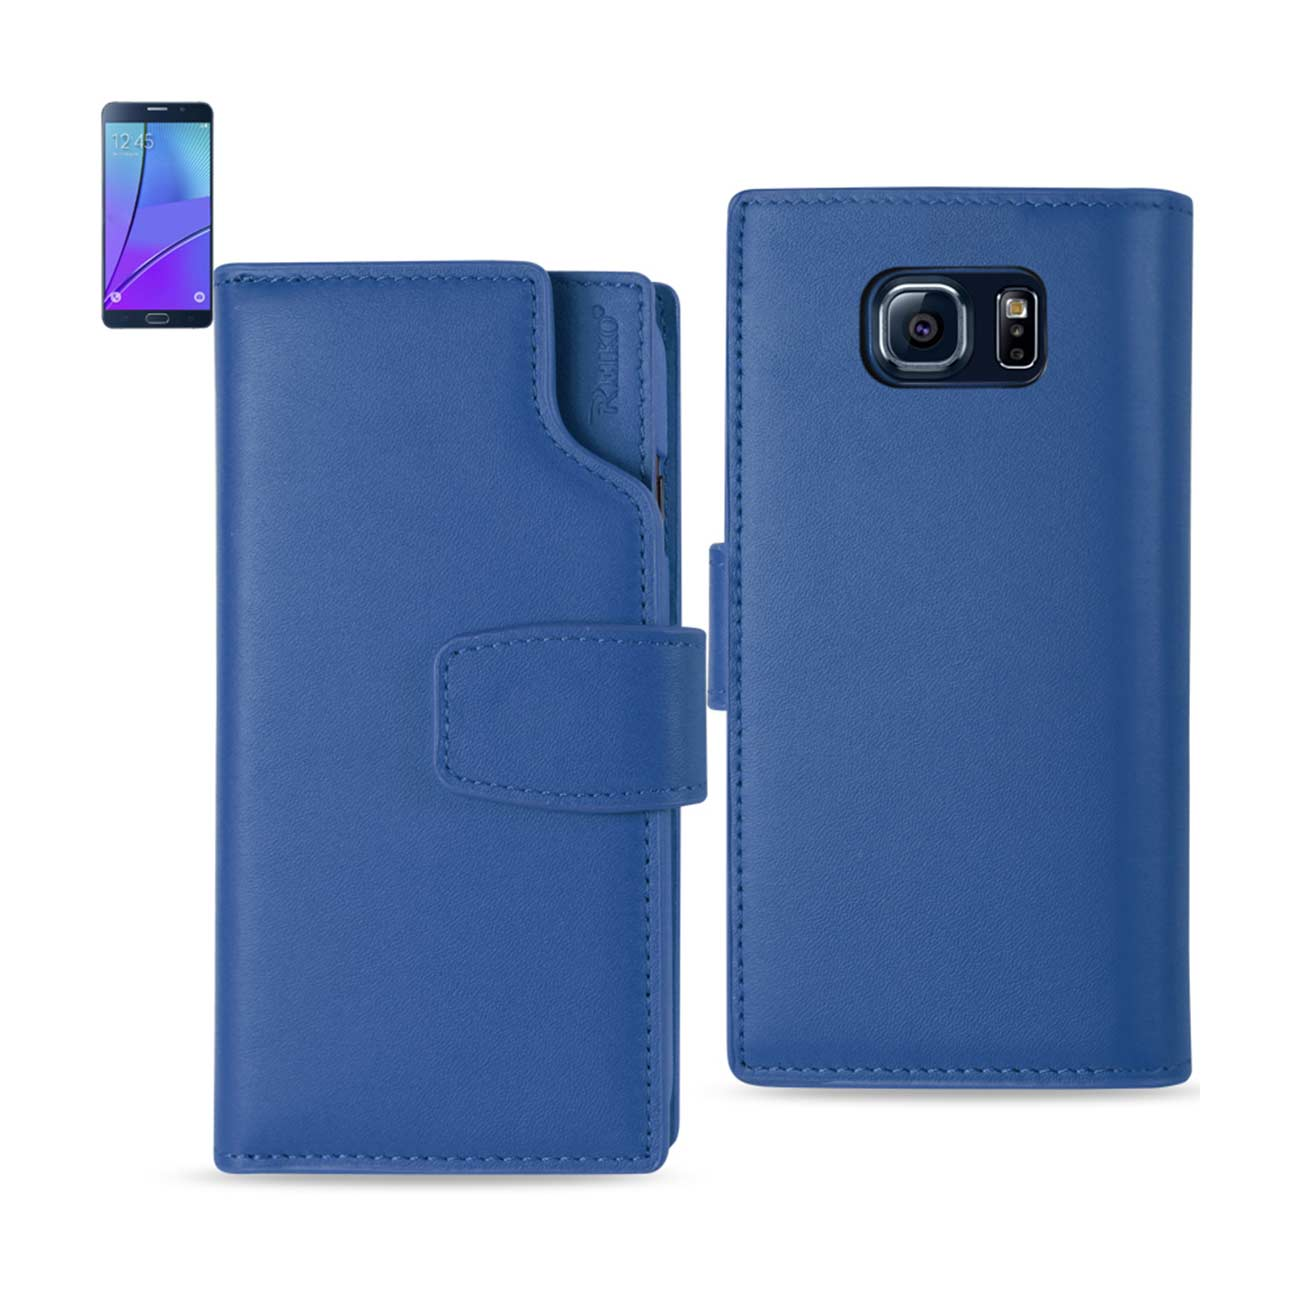 SAMSUNG GALAXY NOTE 5 GENUINE LEATHER WALLET CASE WITH OPEN THUMB CUT IN ULTRAMARINE